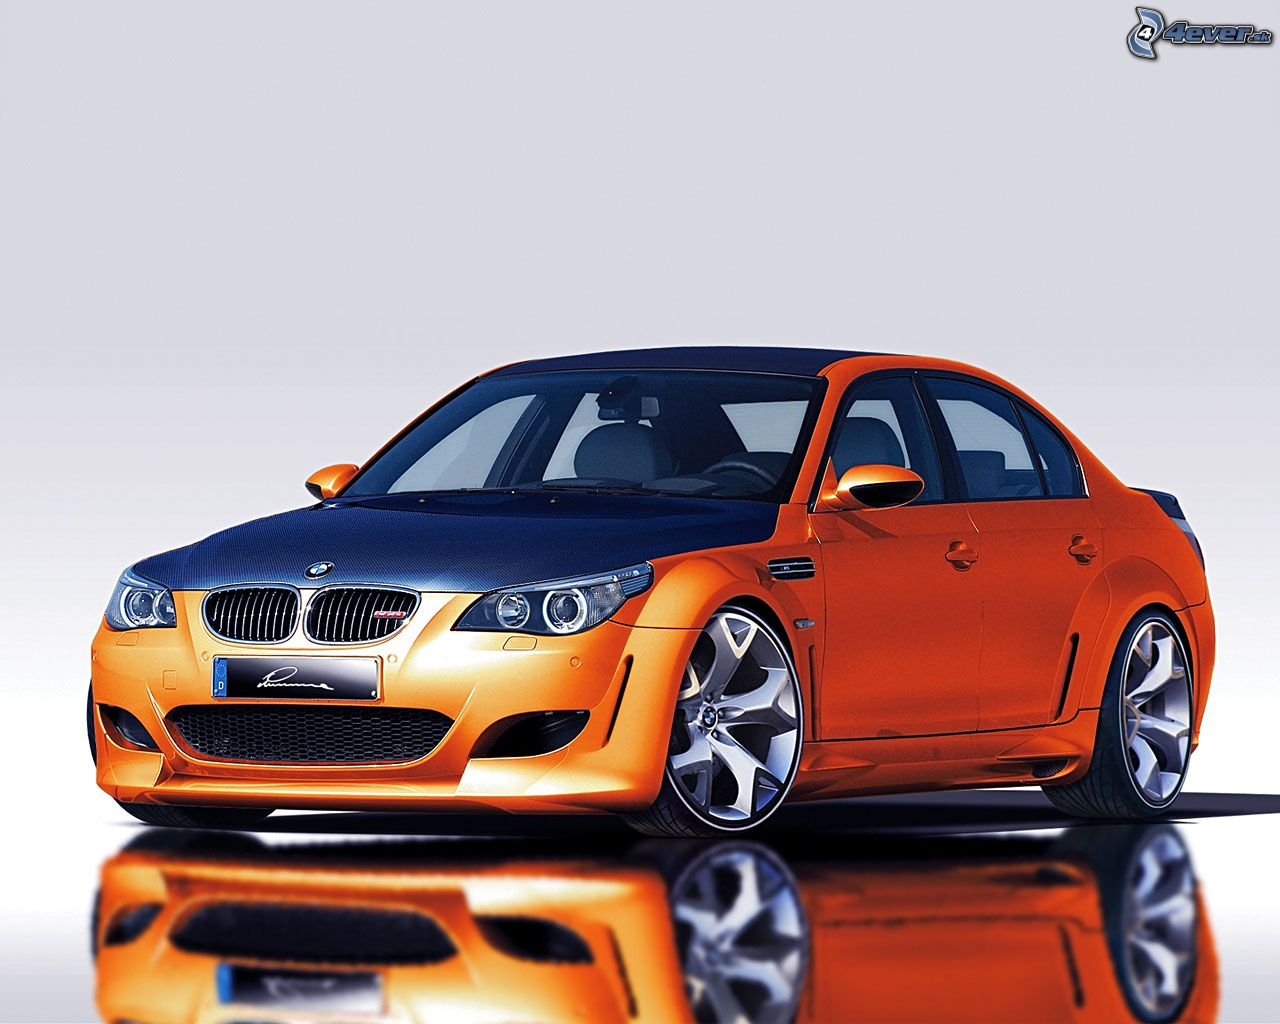 [obrazky.4ever.sk] BMW, m5, tunning, auto 7917326.jpg